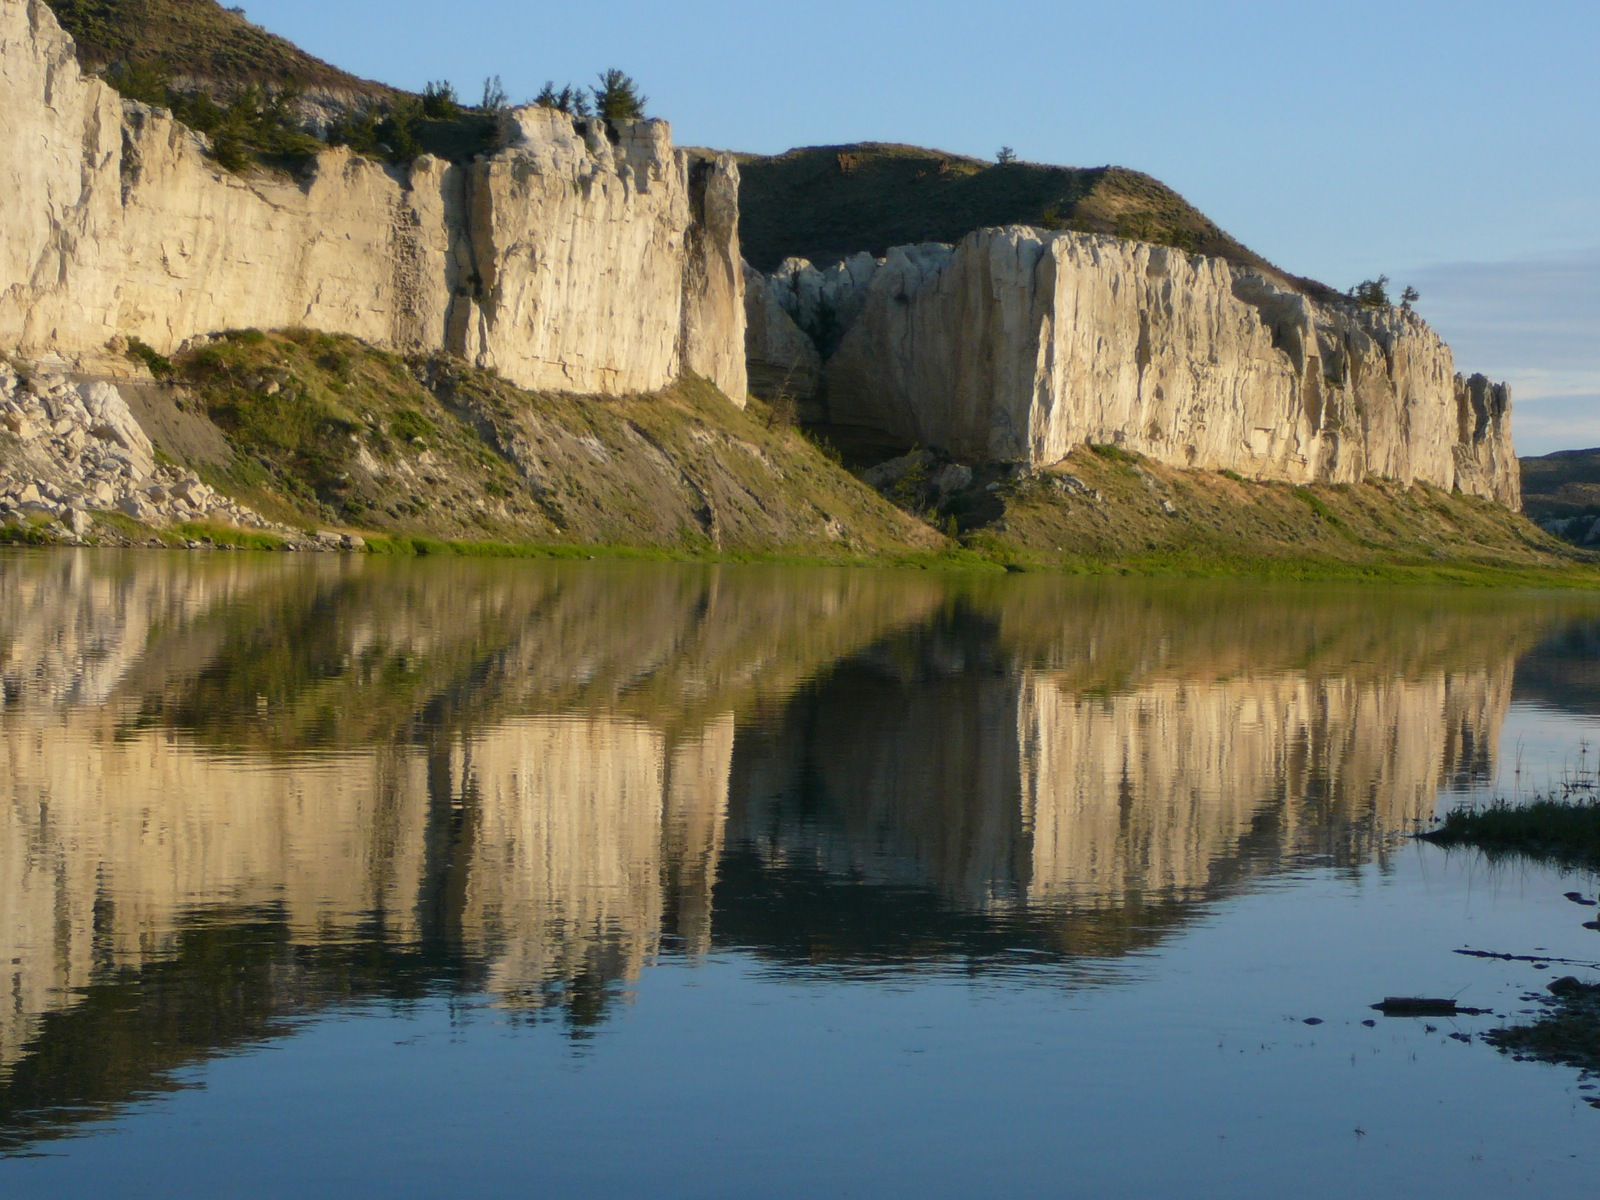 Rock faces on the Missouri River are reflected in the glassy water of the river.